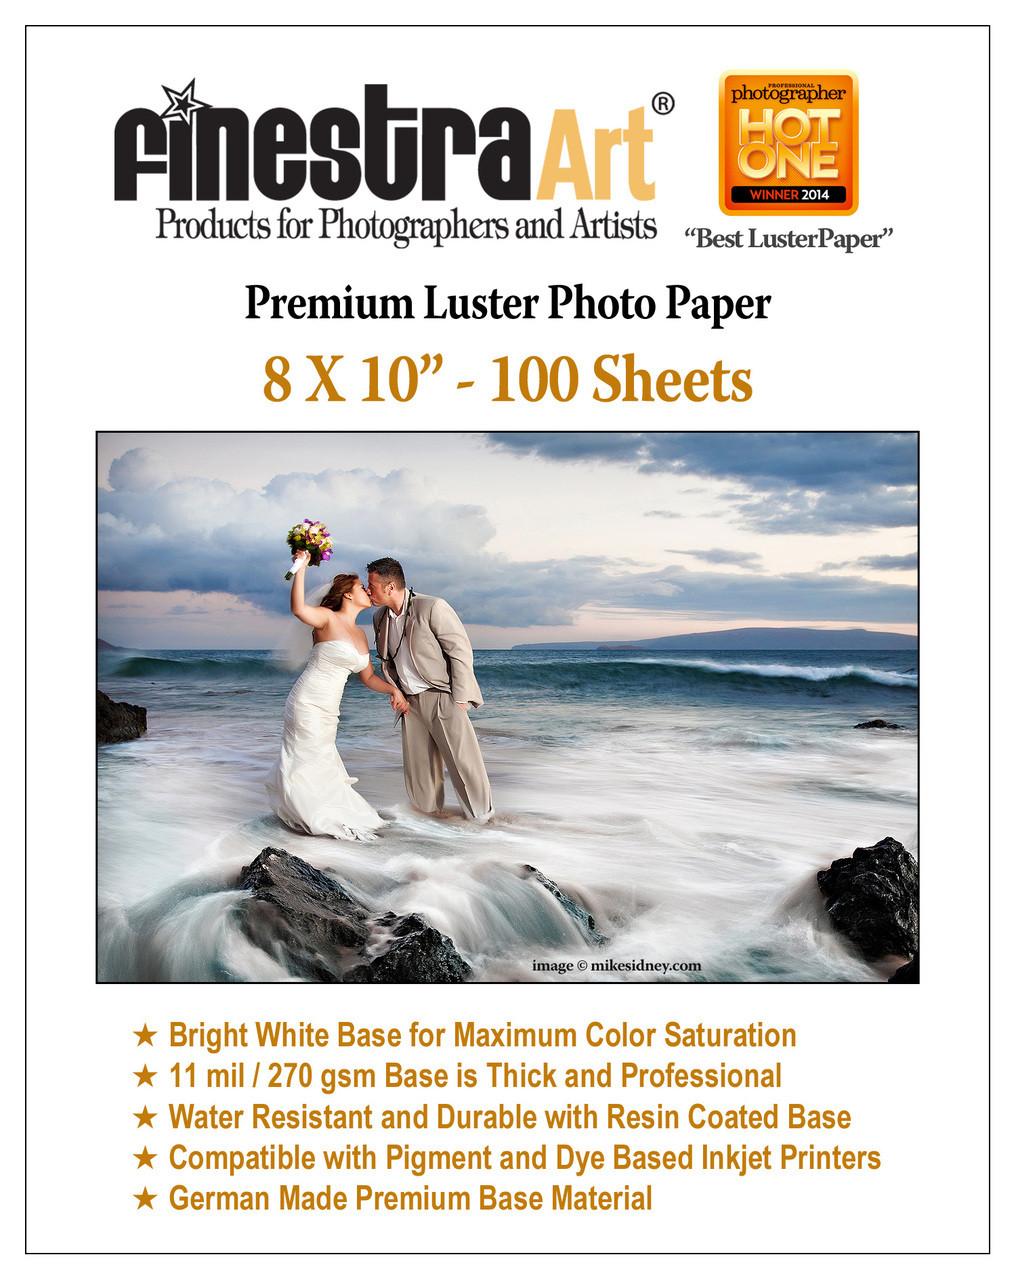 8x10 Premium Luster Photo Paper 100 Sheets Finestra Art